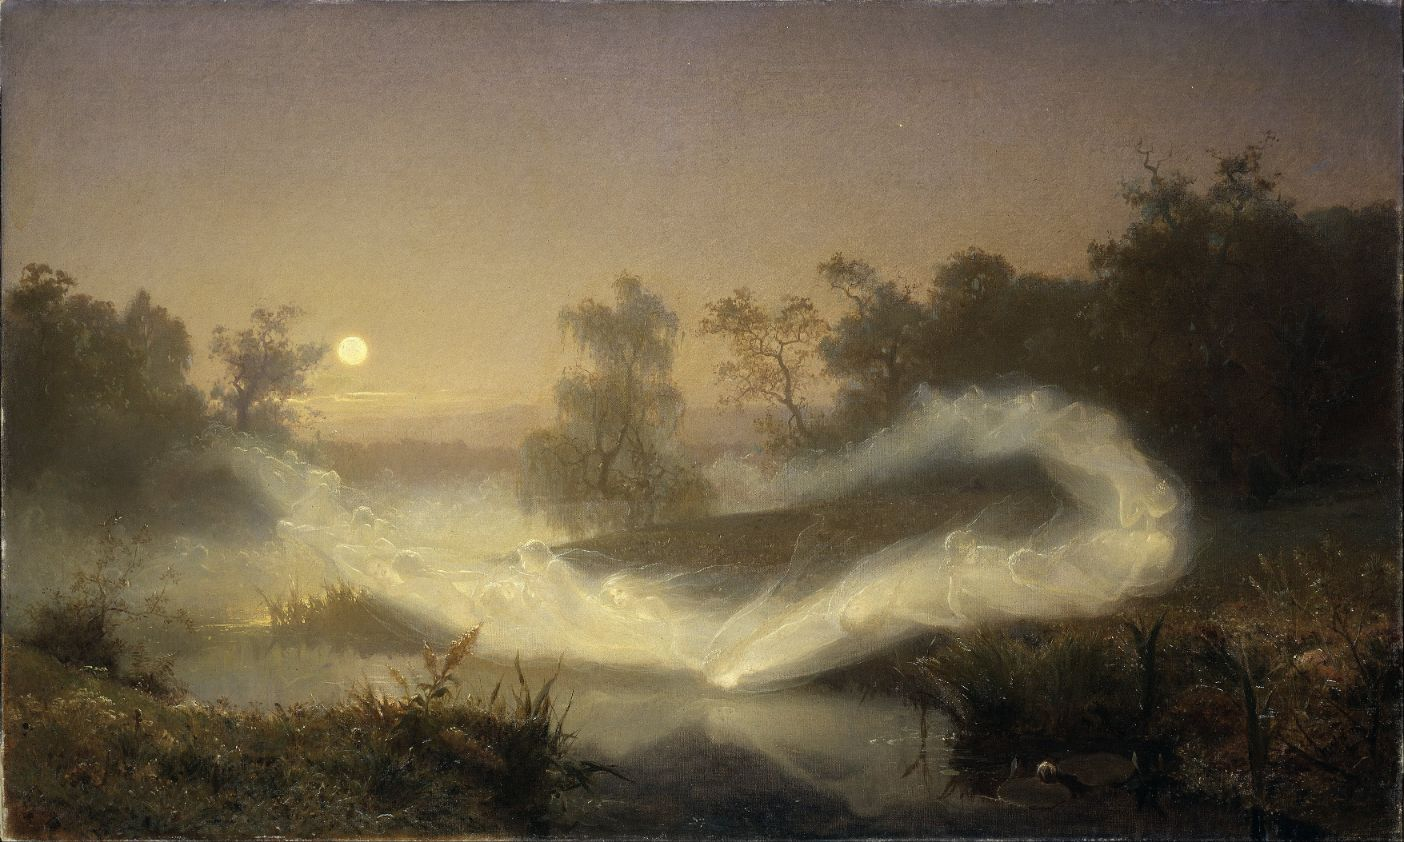 Dancing fairies by August Malmström